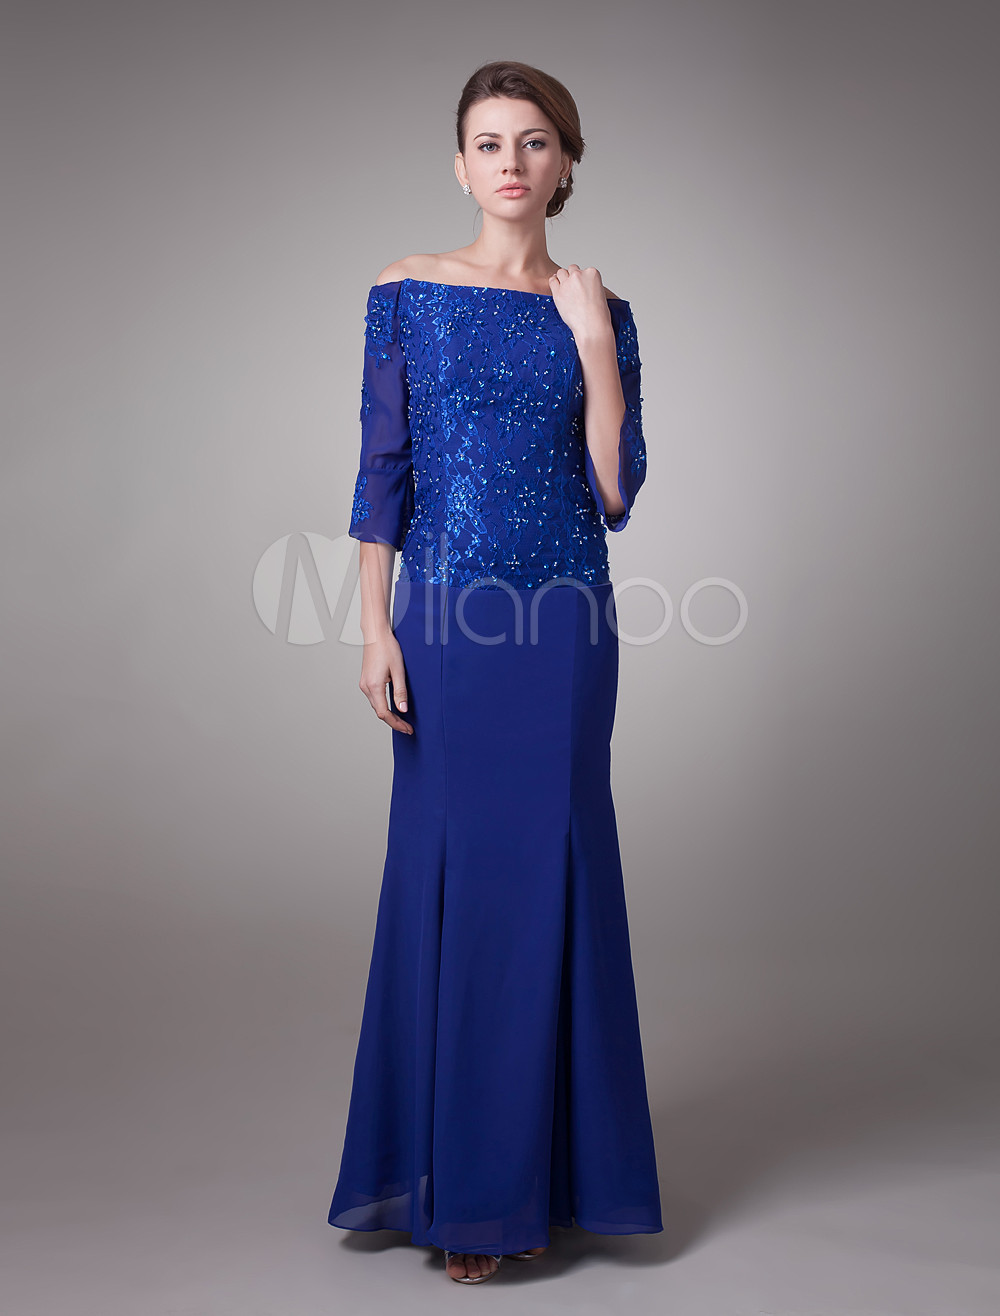 Royal Blue Off-The-Shoulder Chiffon Mother Of Bride And Groom Dress (Wedding) photo